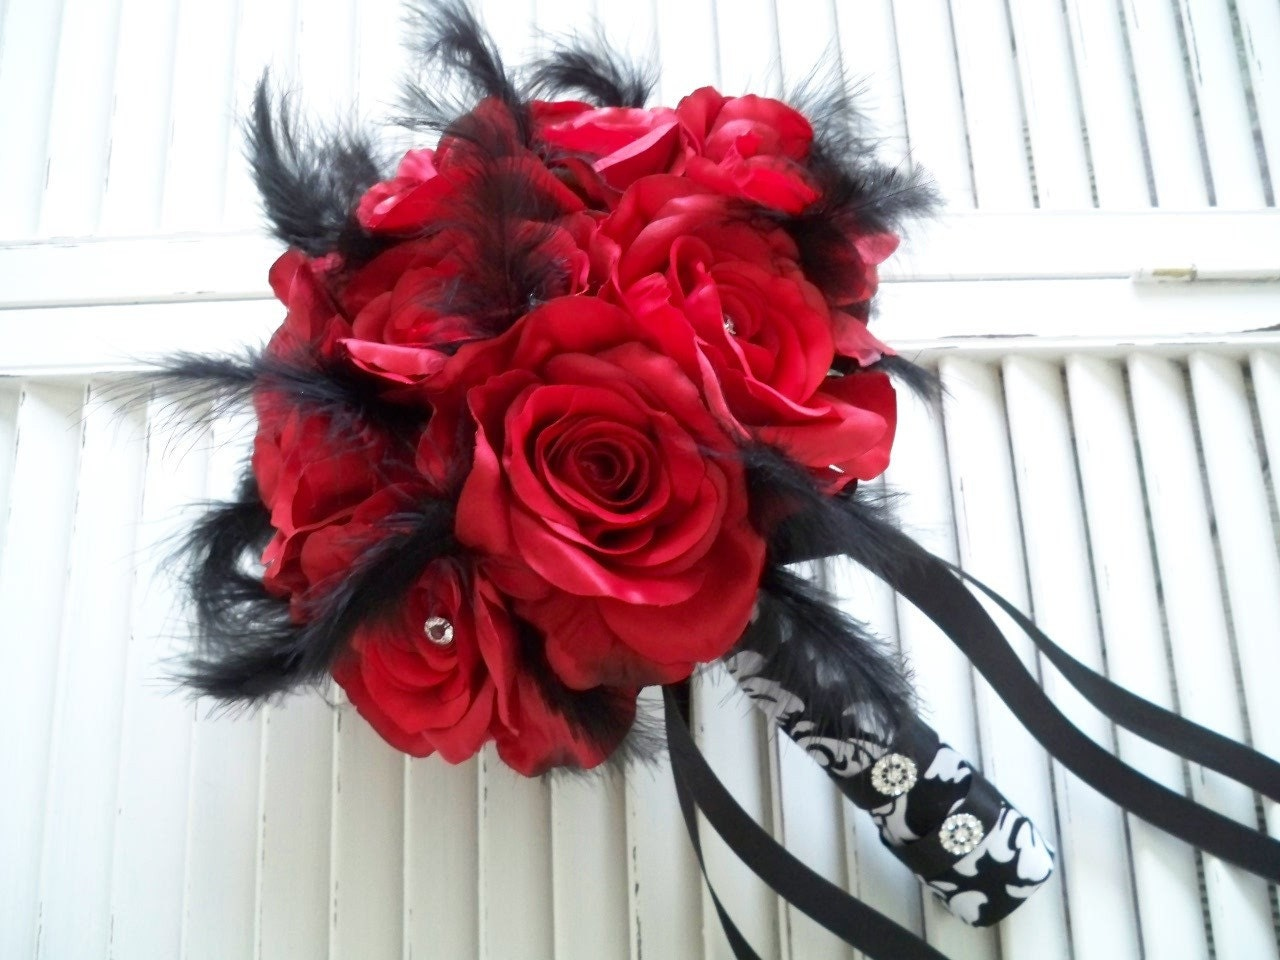 RED ROSES WRAPPED IN  BLACK AND WHITE DAMASK 14 PIECE BRIDAL BOUQUET SET